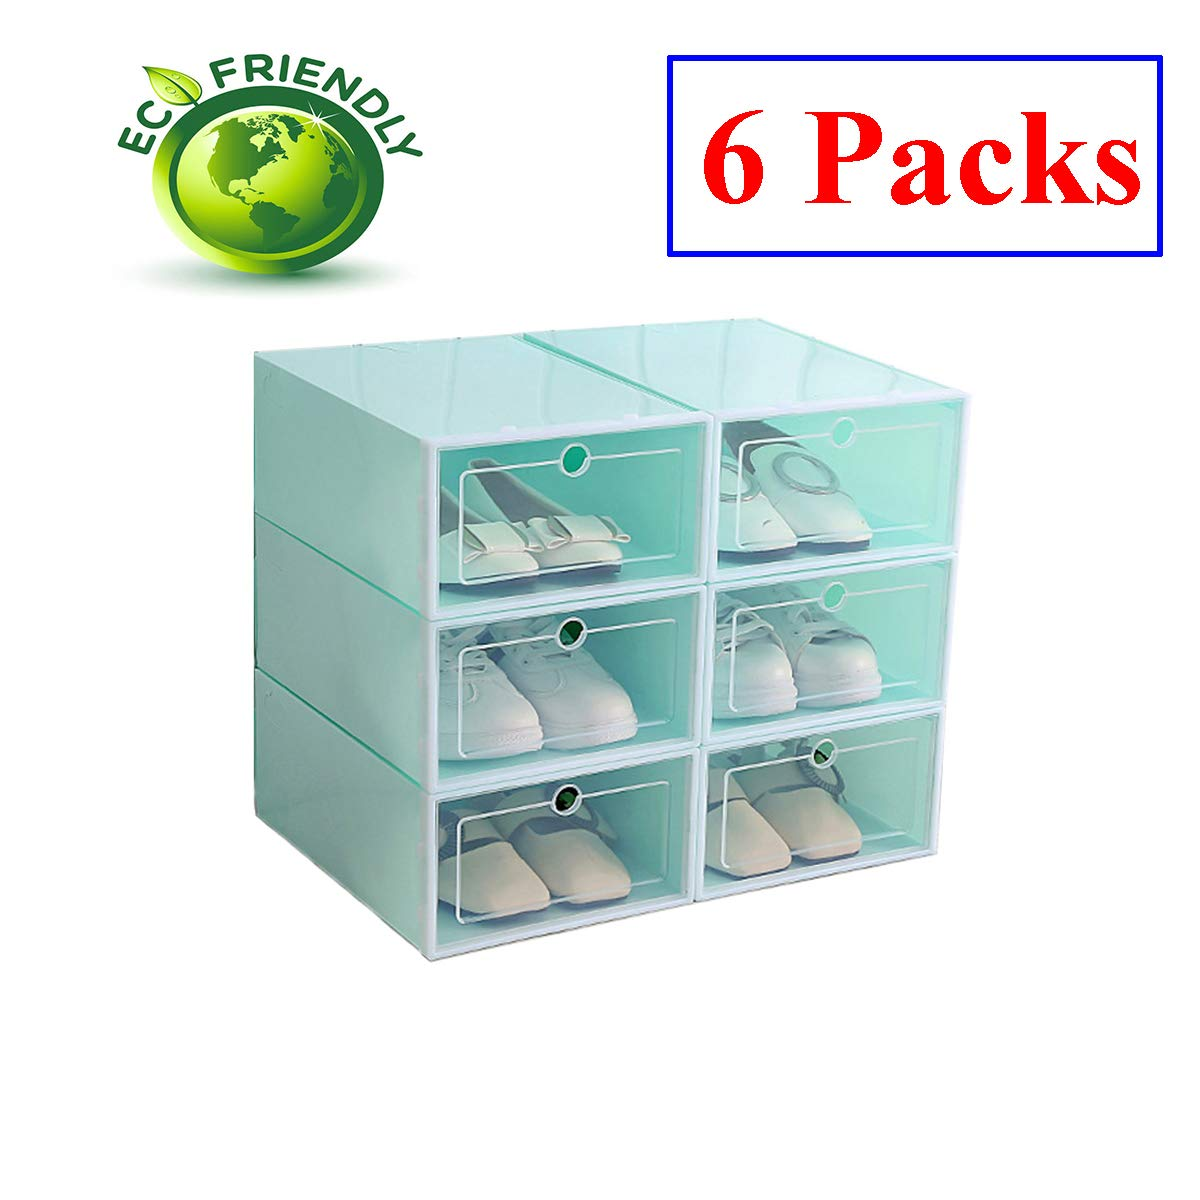 Hwalla Shoe Boxes Clear Plastic Stackable,Back to School,Shoe Box Size Storage Containers Lids (Green, 6 Pack) Chongfox